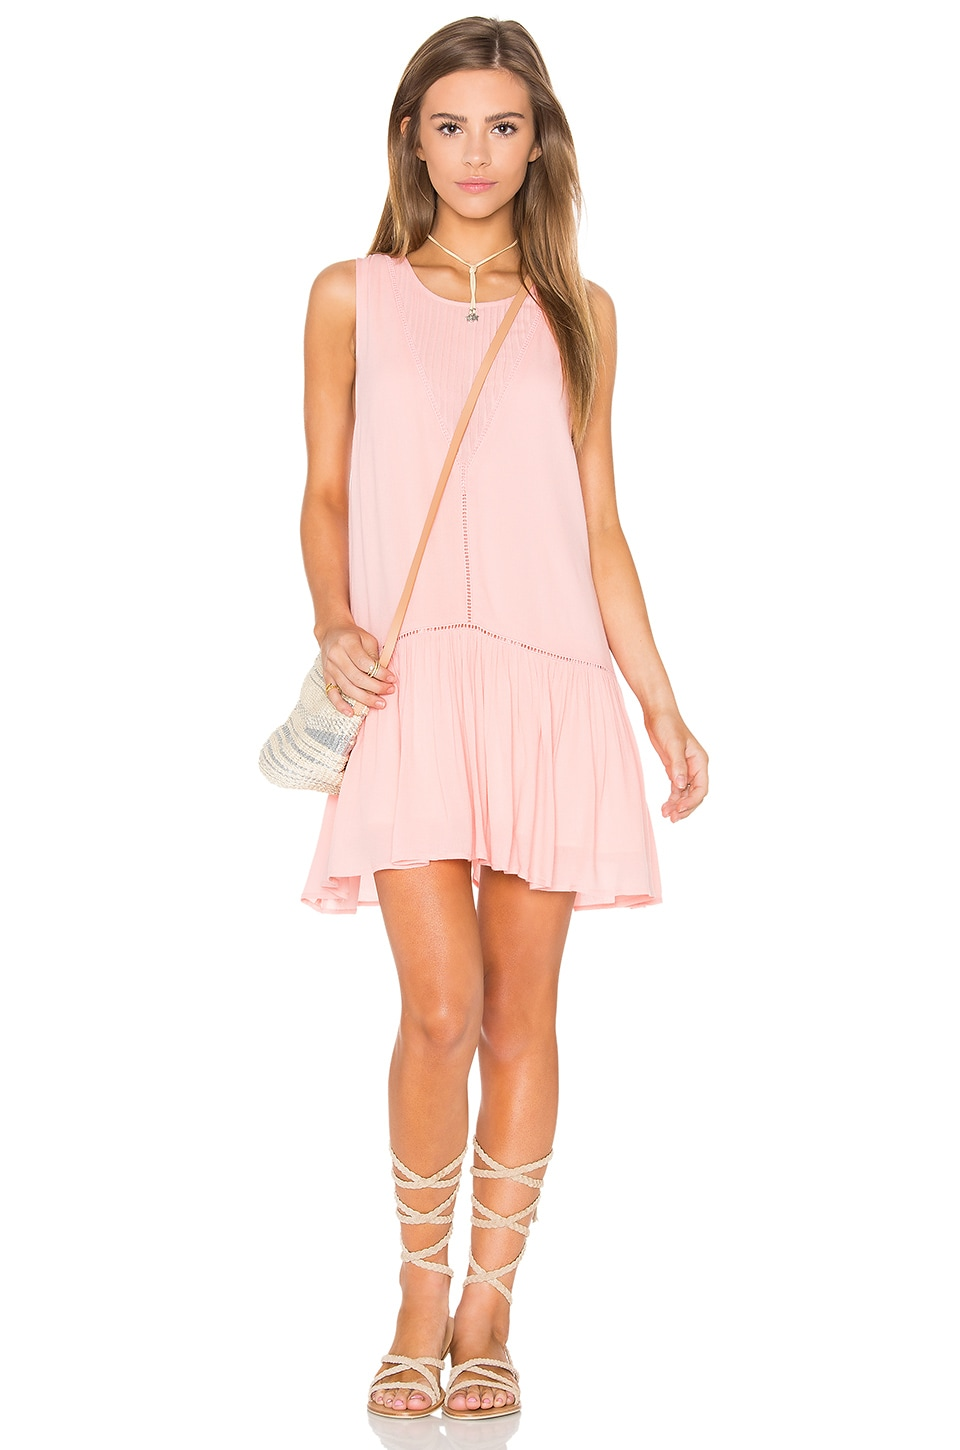 buy Blushing Beach Dress by MINKPINK dresses online shopping